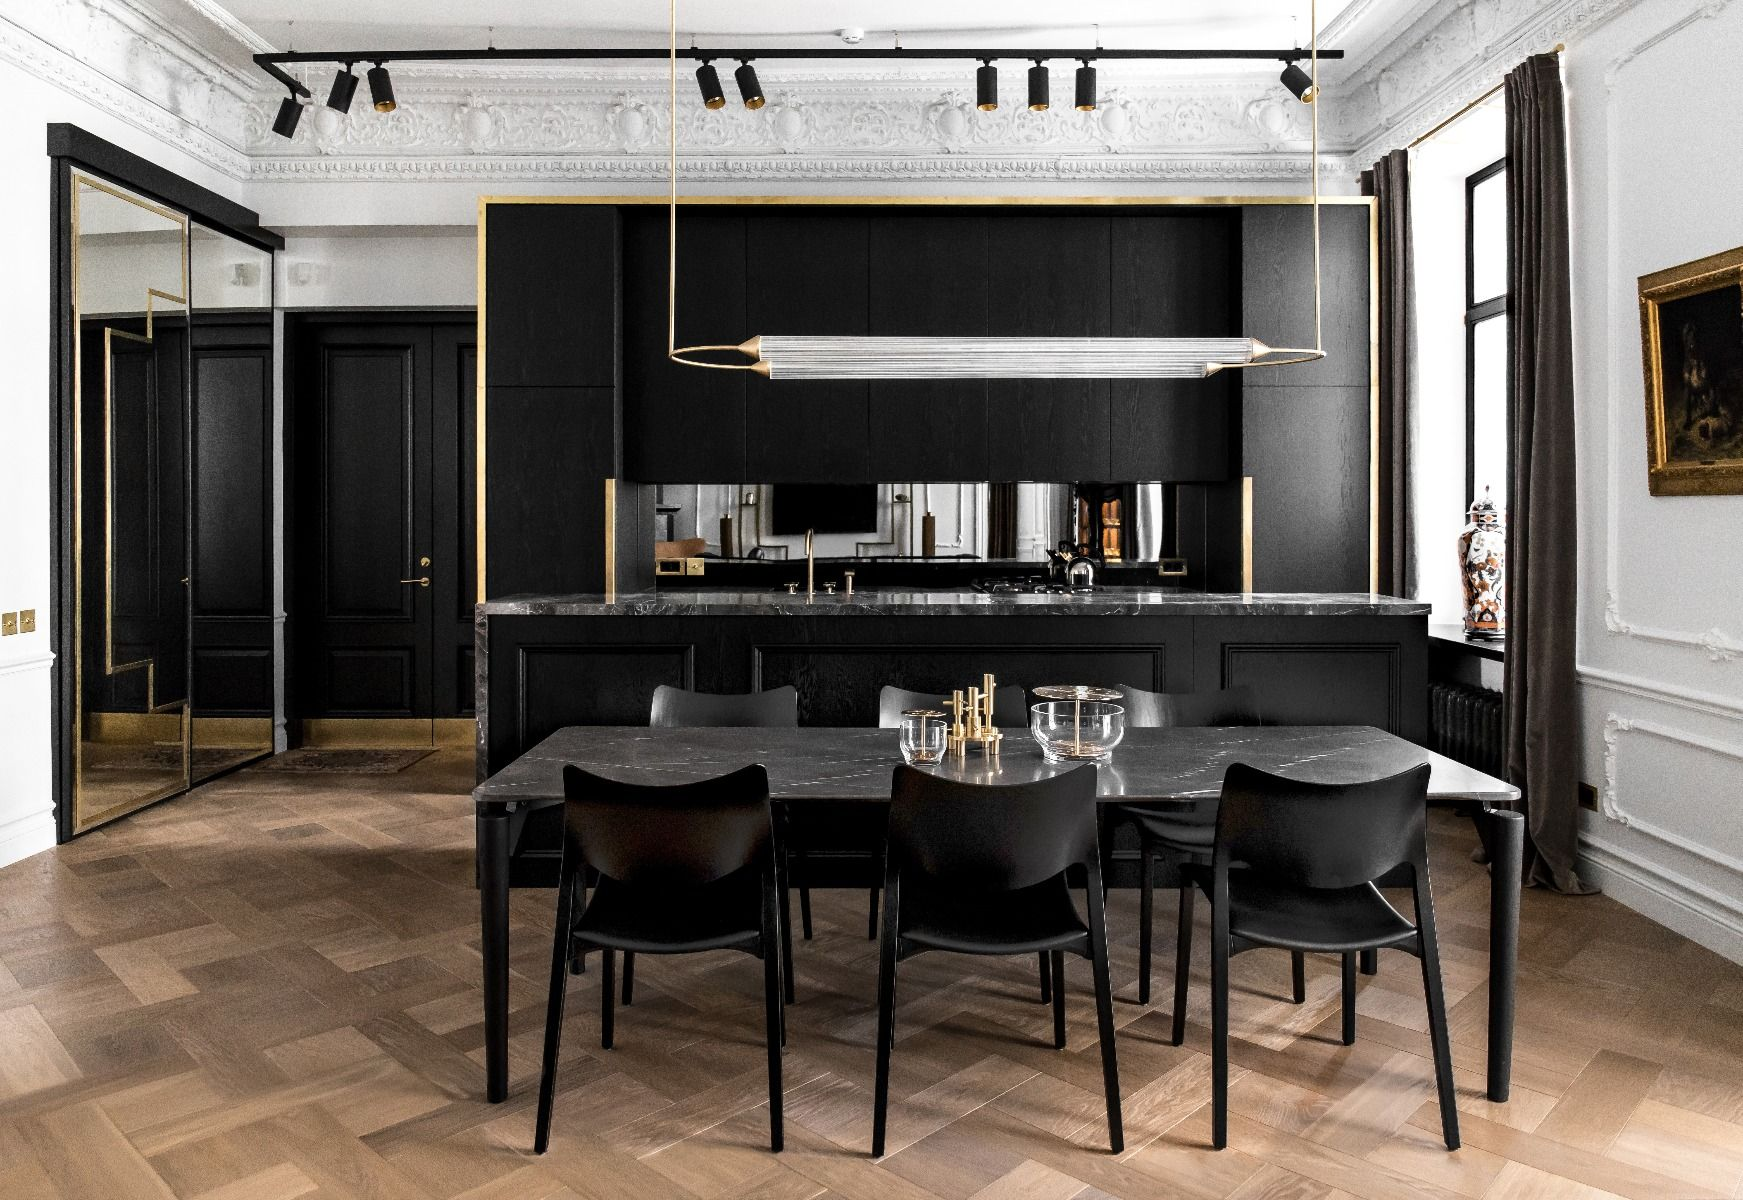 STUA Laclasica Chair with a black marble table in a black kitchen